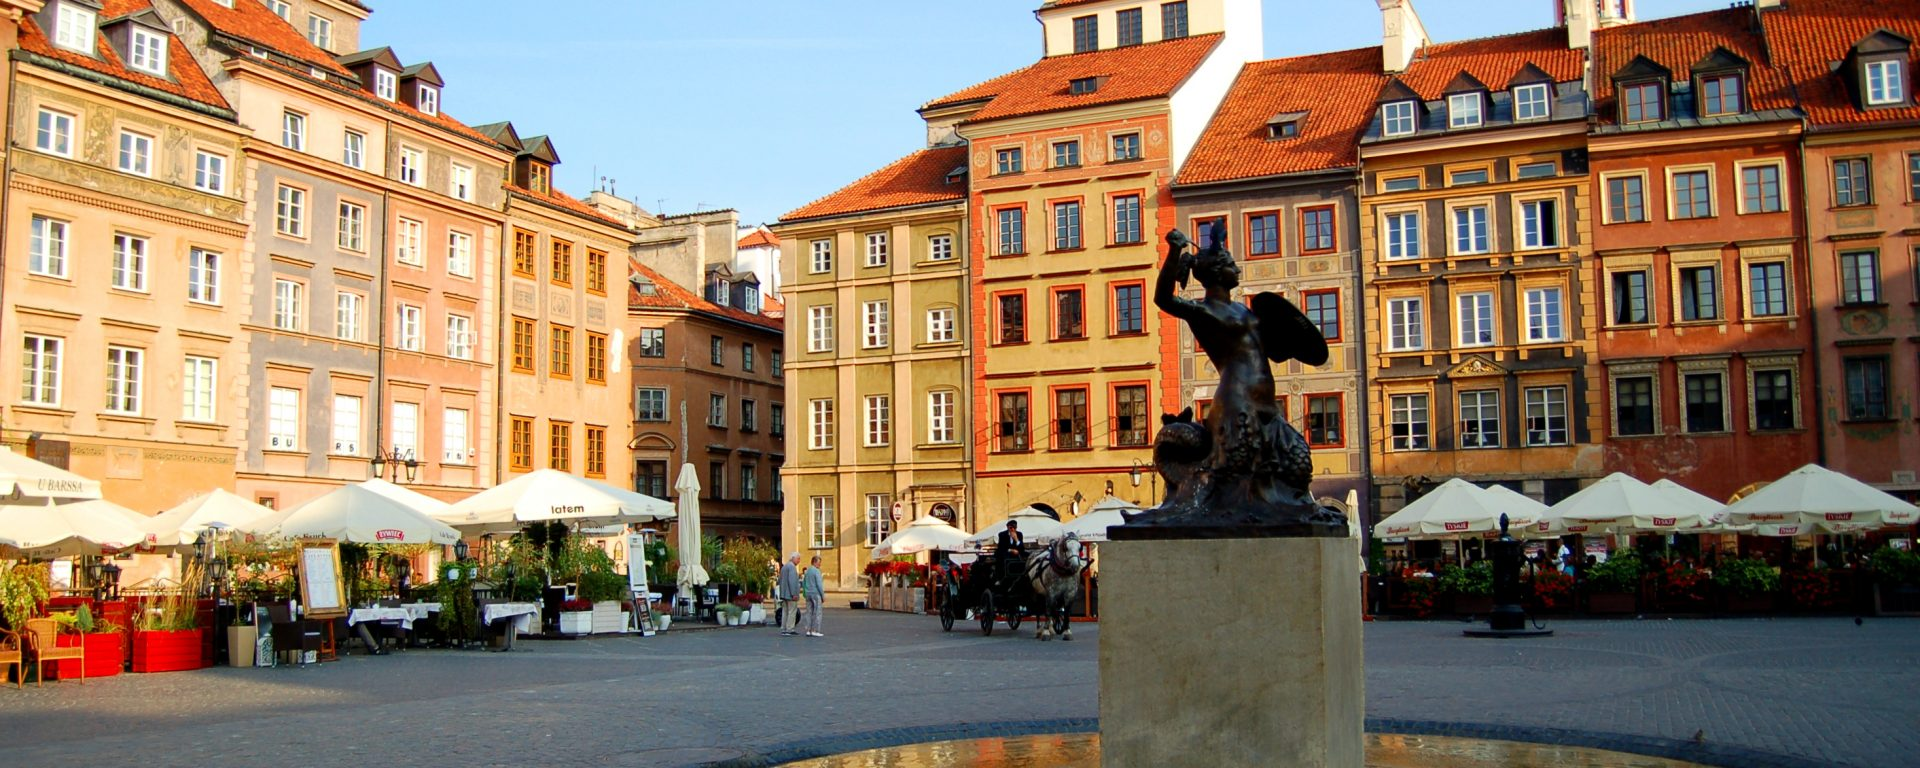 How to Spend a Weekend in Warsaw - Old Town Square in the Sunshine